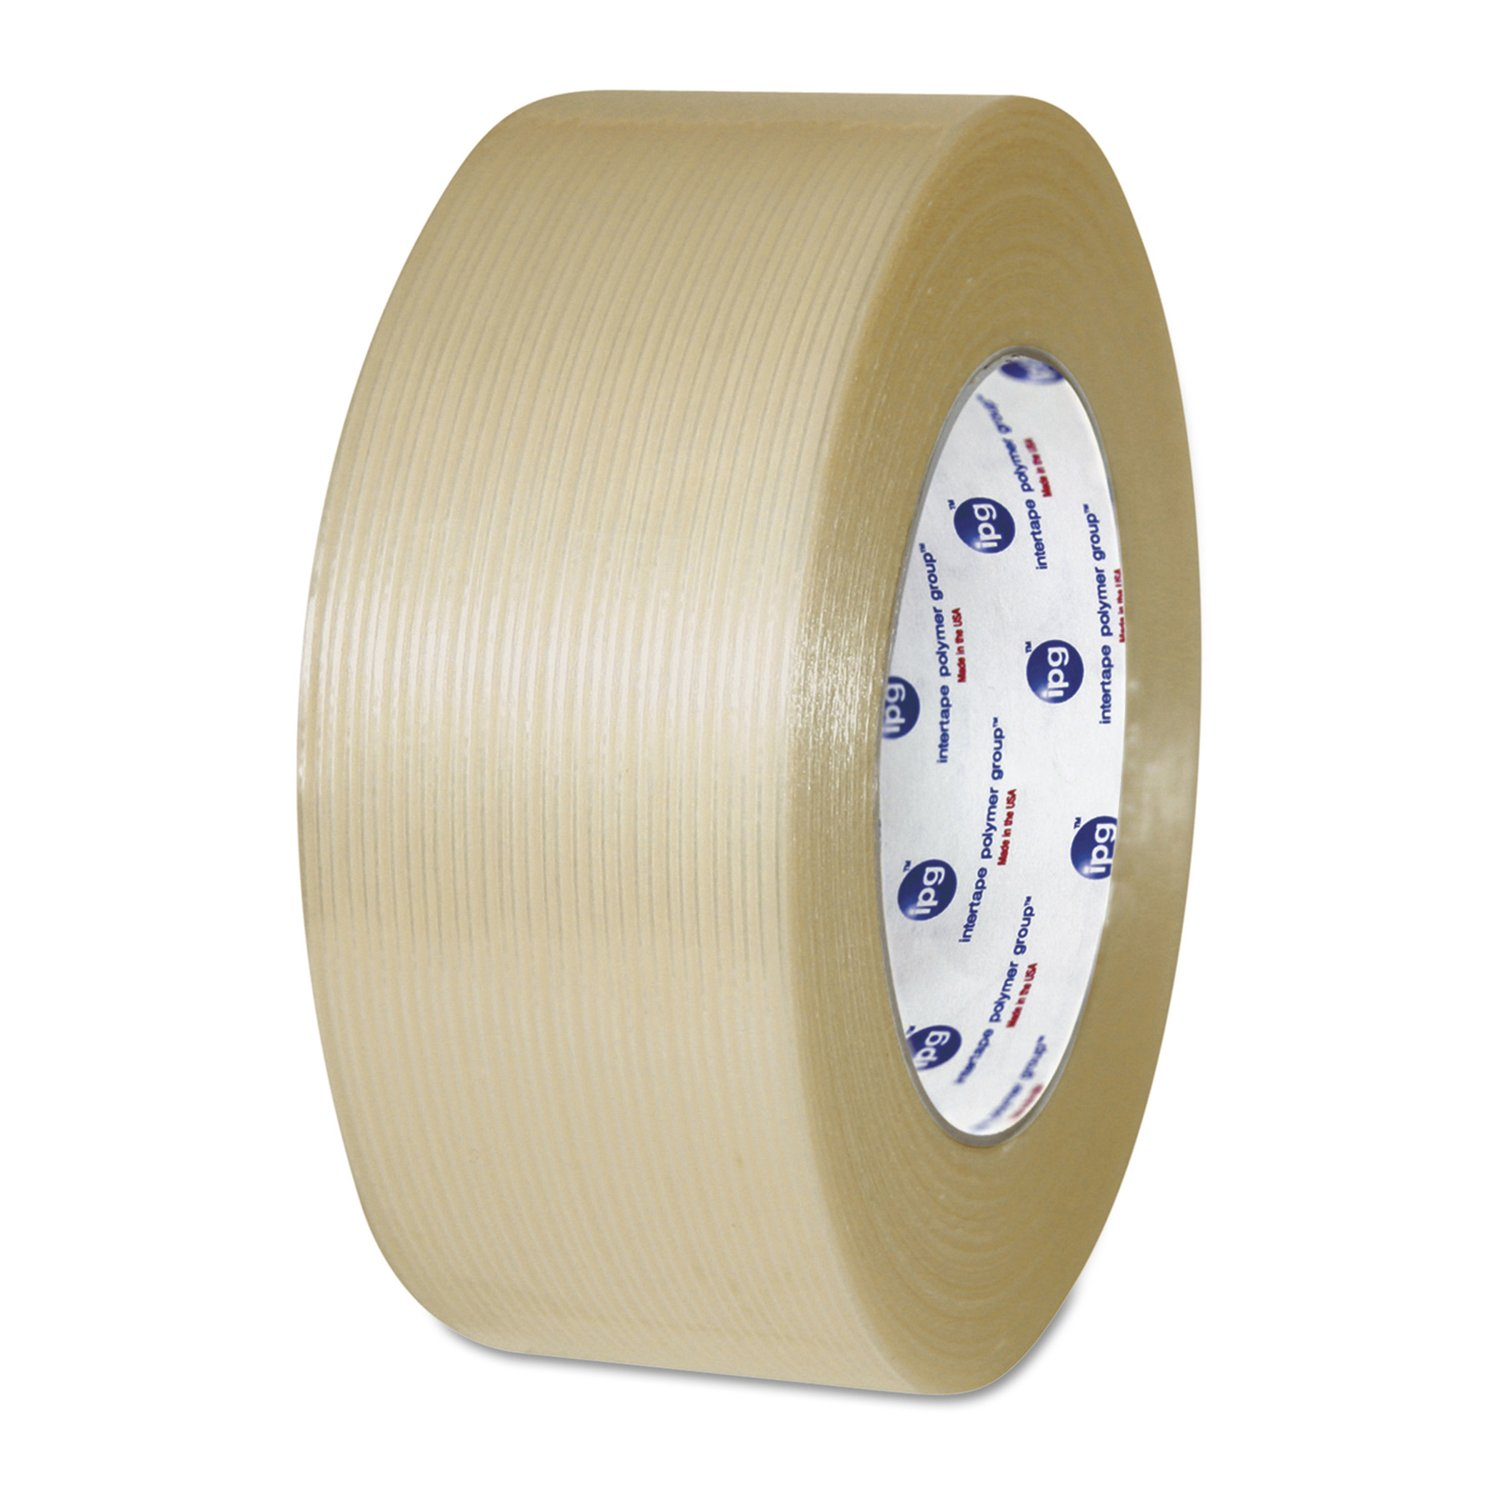 Image of Adhesive Tapes Intertape Polymer Group RG300.43 Clear RG300 Utility Grade Filament Tape, 2' x 60 yd, 100 lb./inch Strength (Pack of 24)